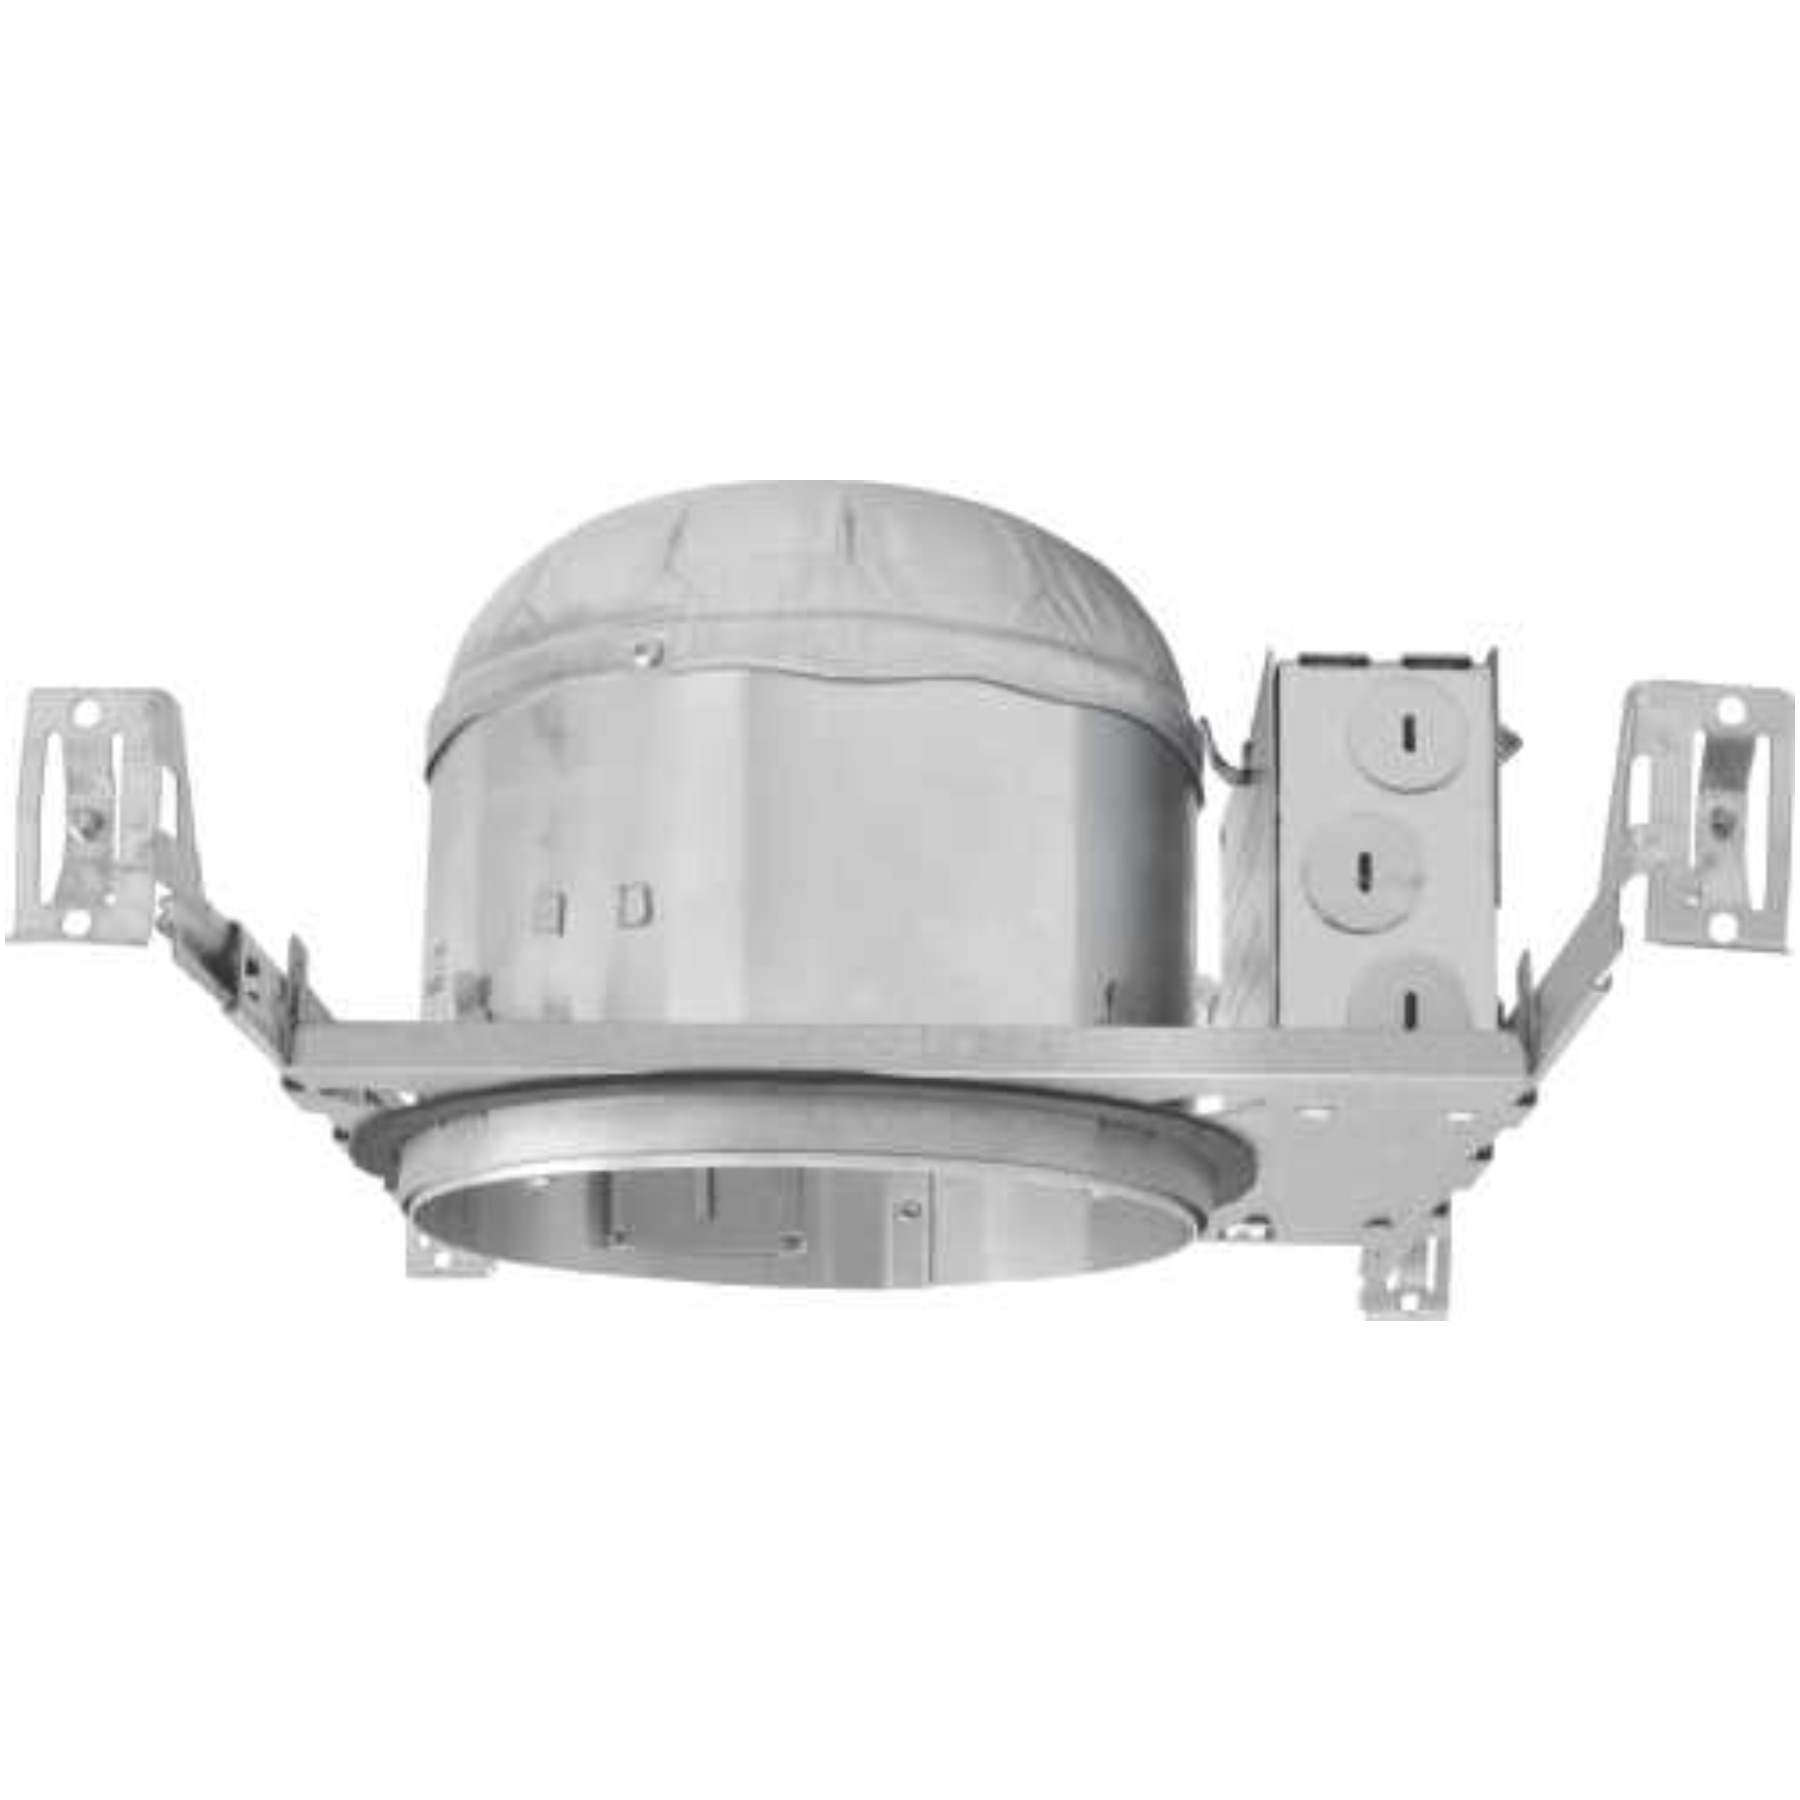 Only MONUMENT RECESSED LIGHTING NEW CONSTRUCTION IC LINE VOLTAGE AIRTI